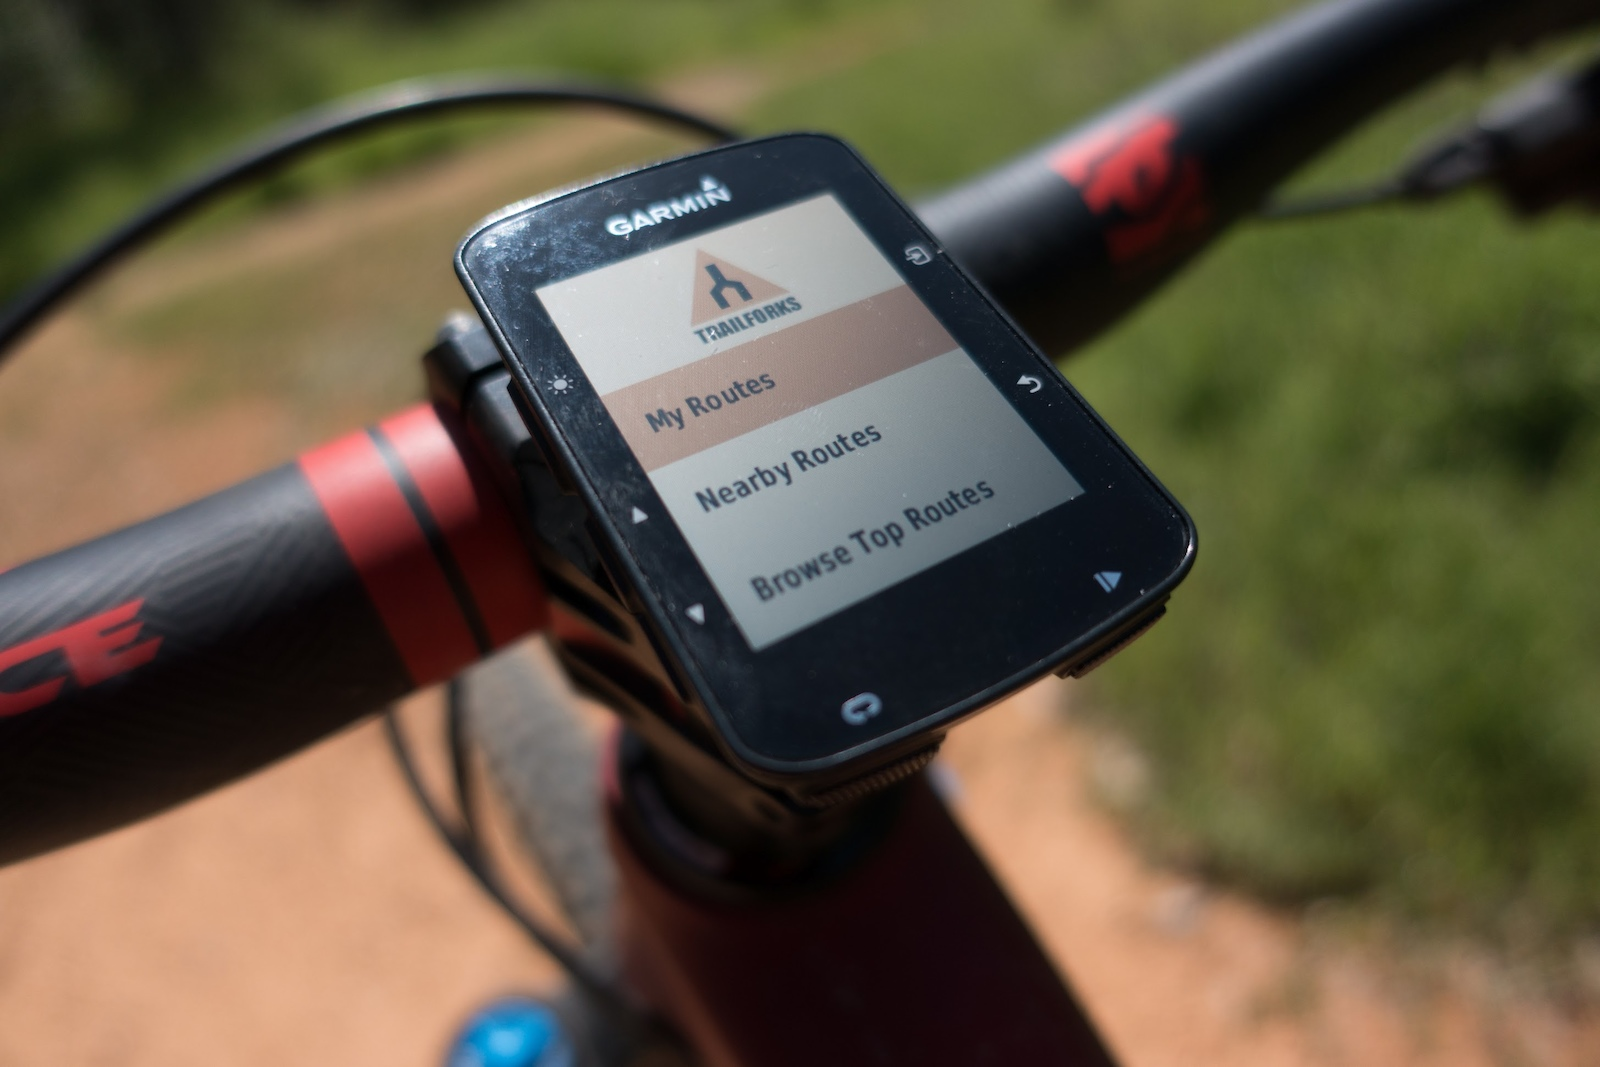 Trailforks now available on the Garmin Edge devices 520 820 100 1030 including the new 520